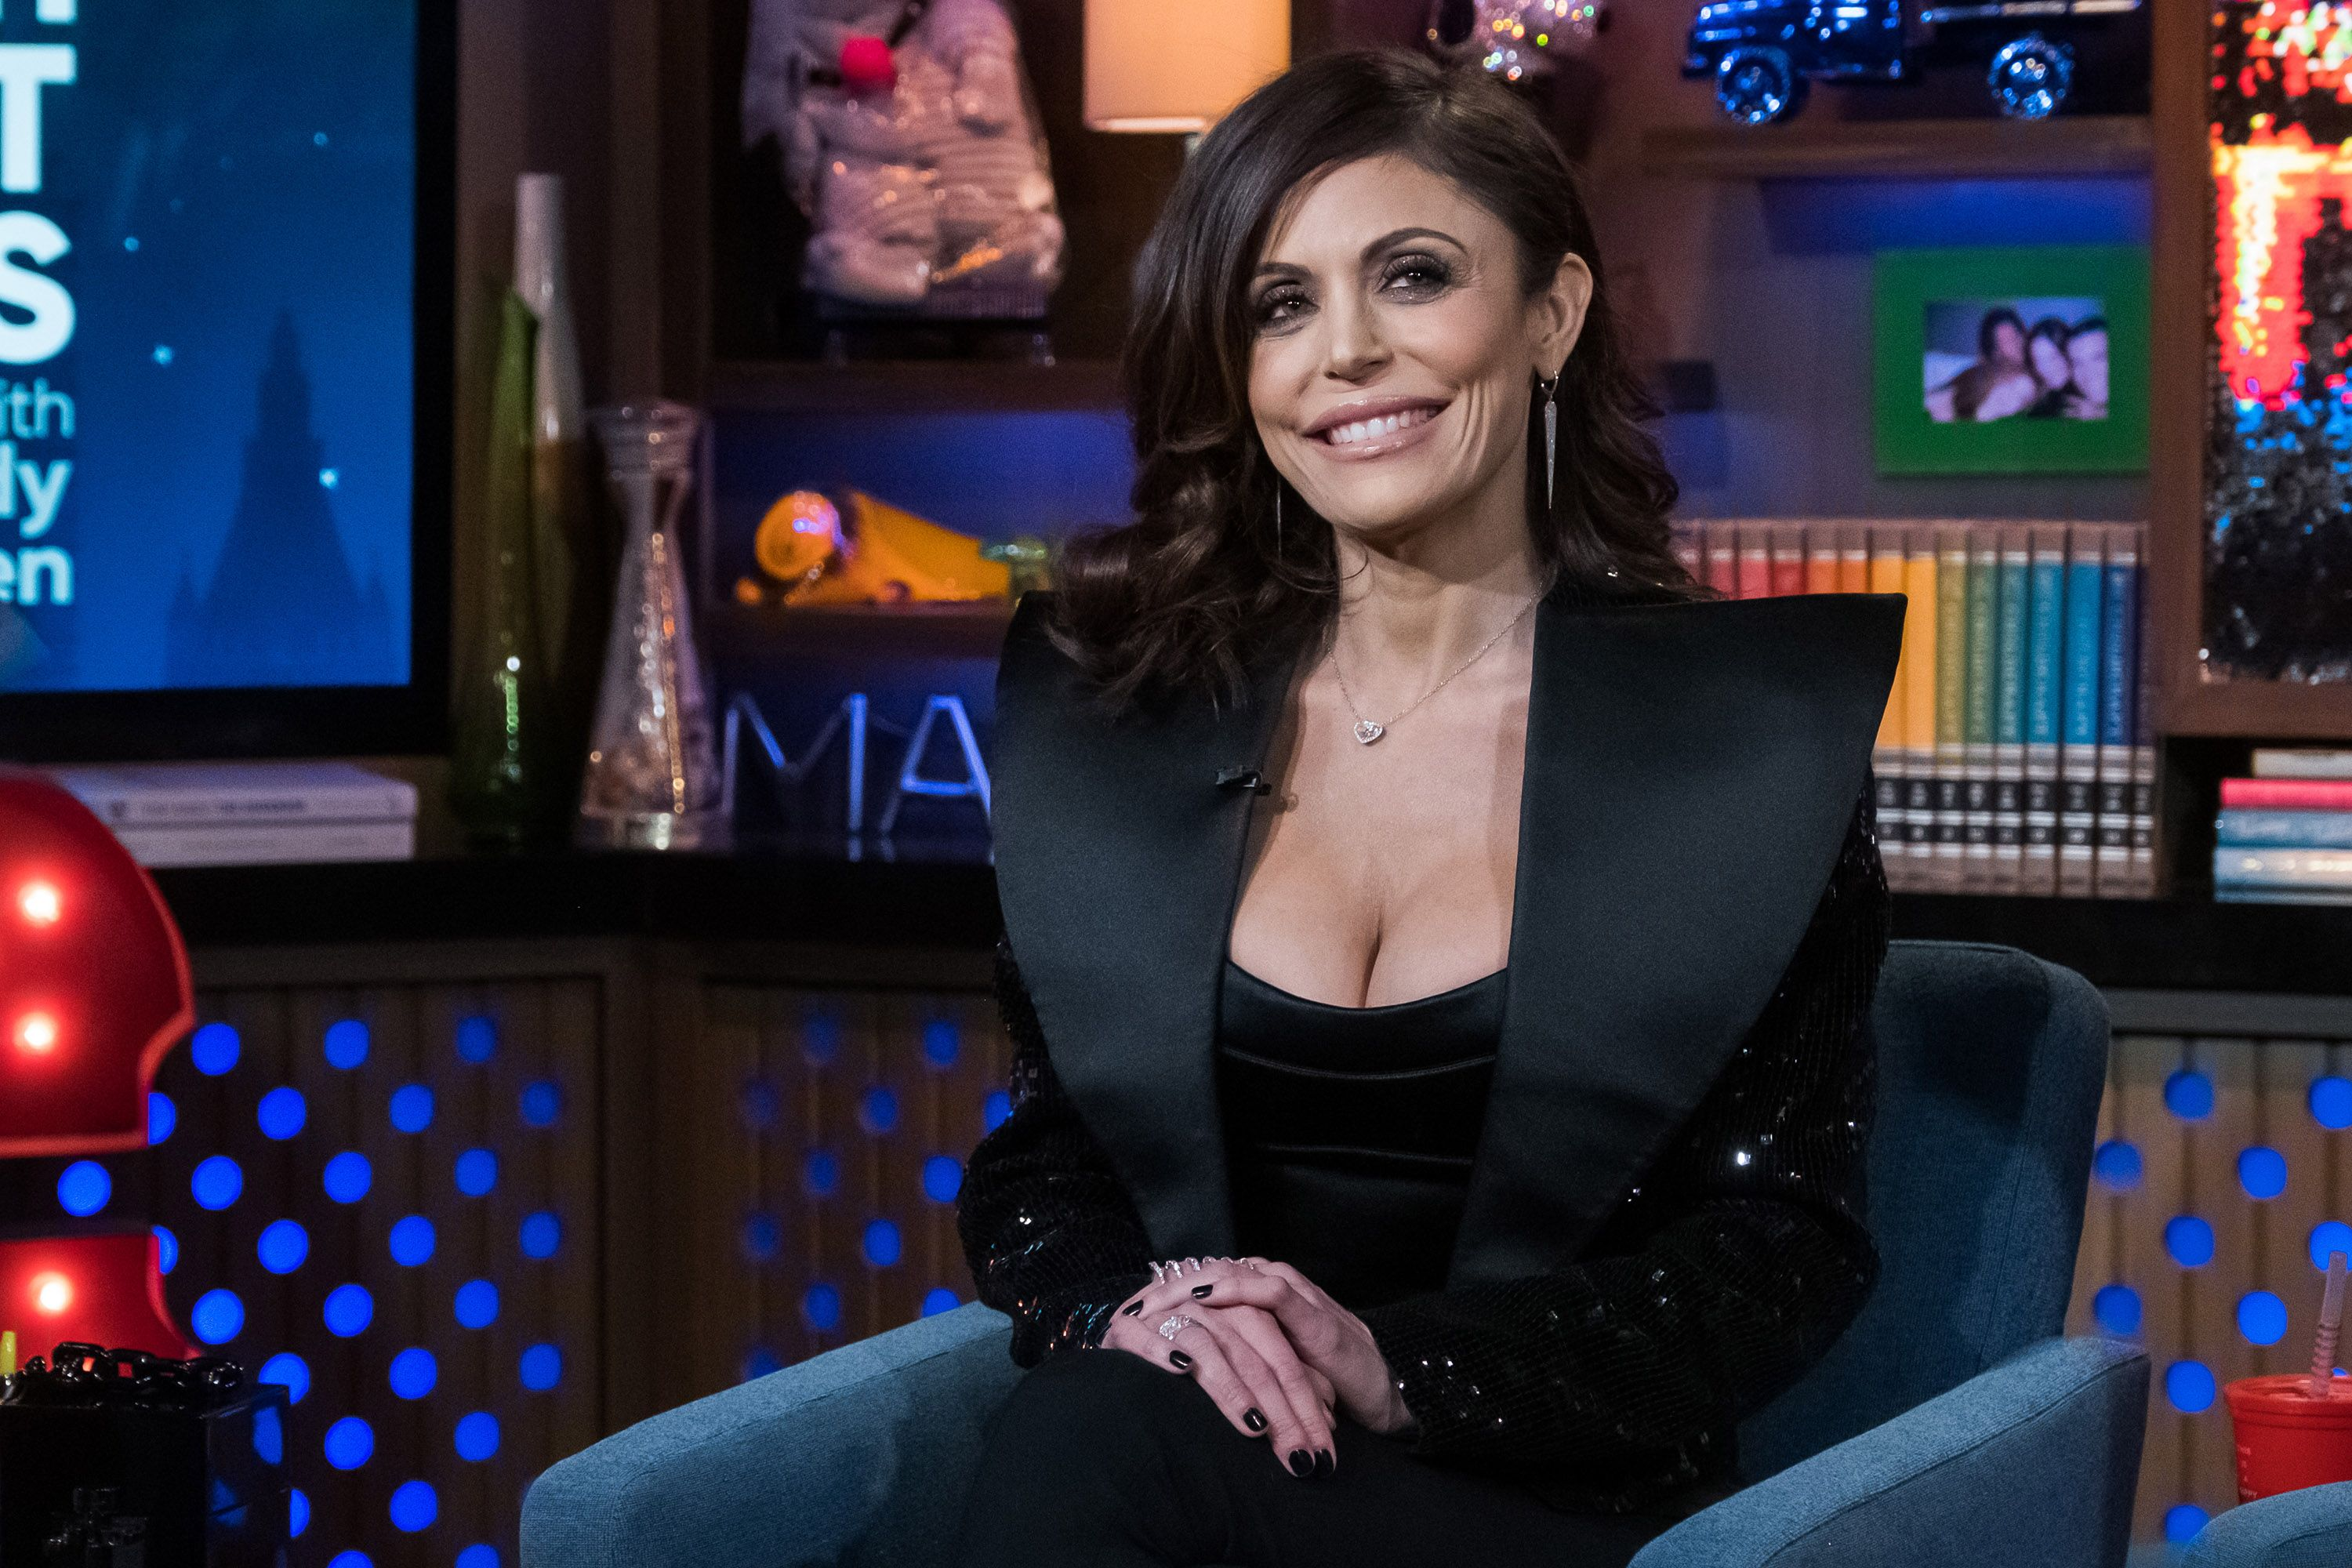 Bethenny Frankel Just Posted Photos Of A Seriously Gnarly Makeup Breakout On Instagram